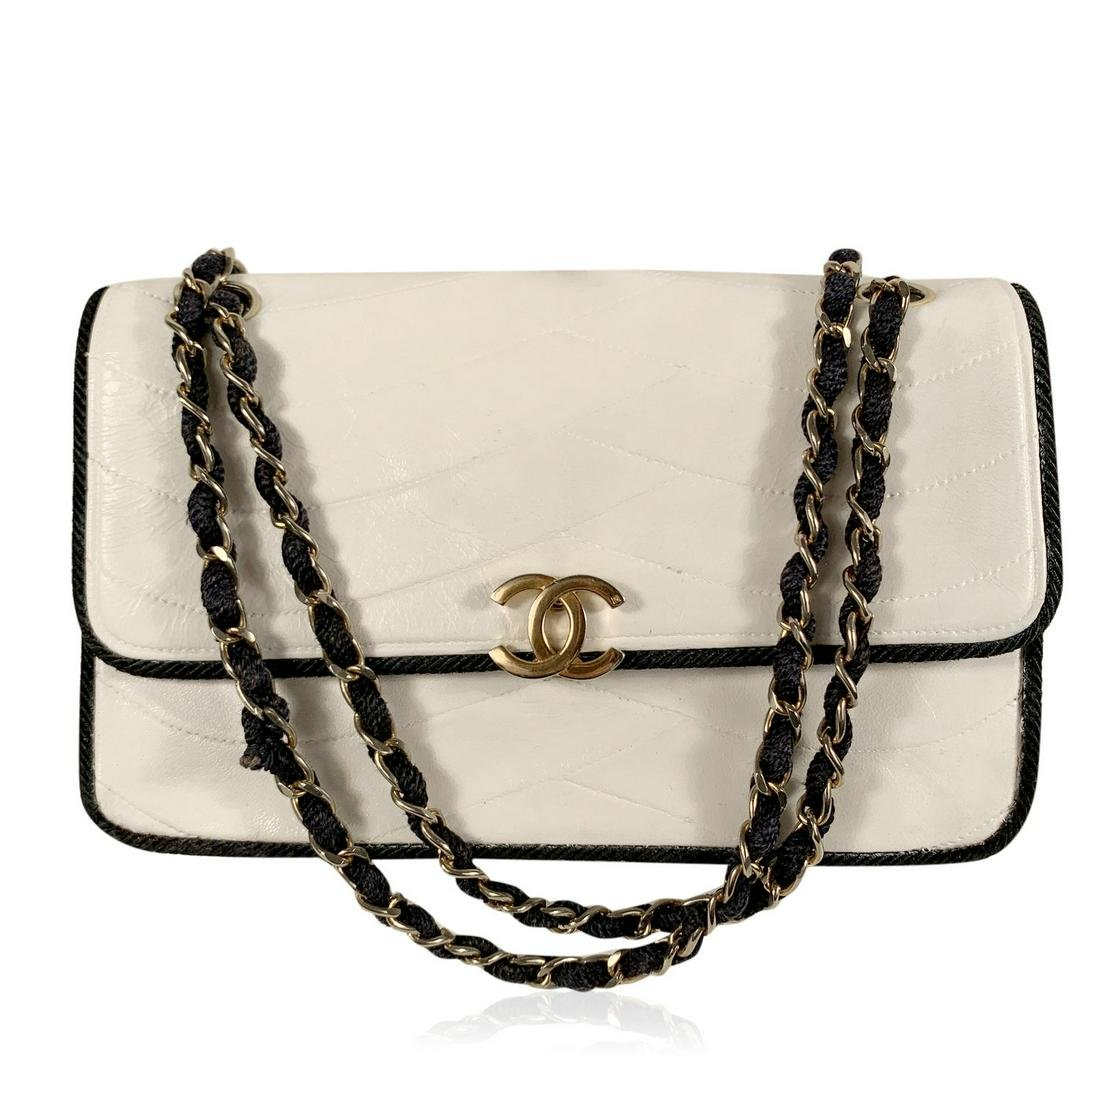 Chanel Vintage White Quilted Leather Shoulder Bag with